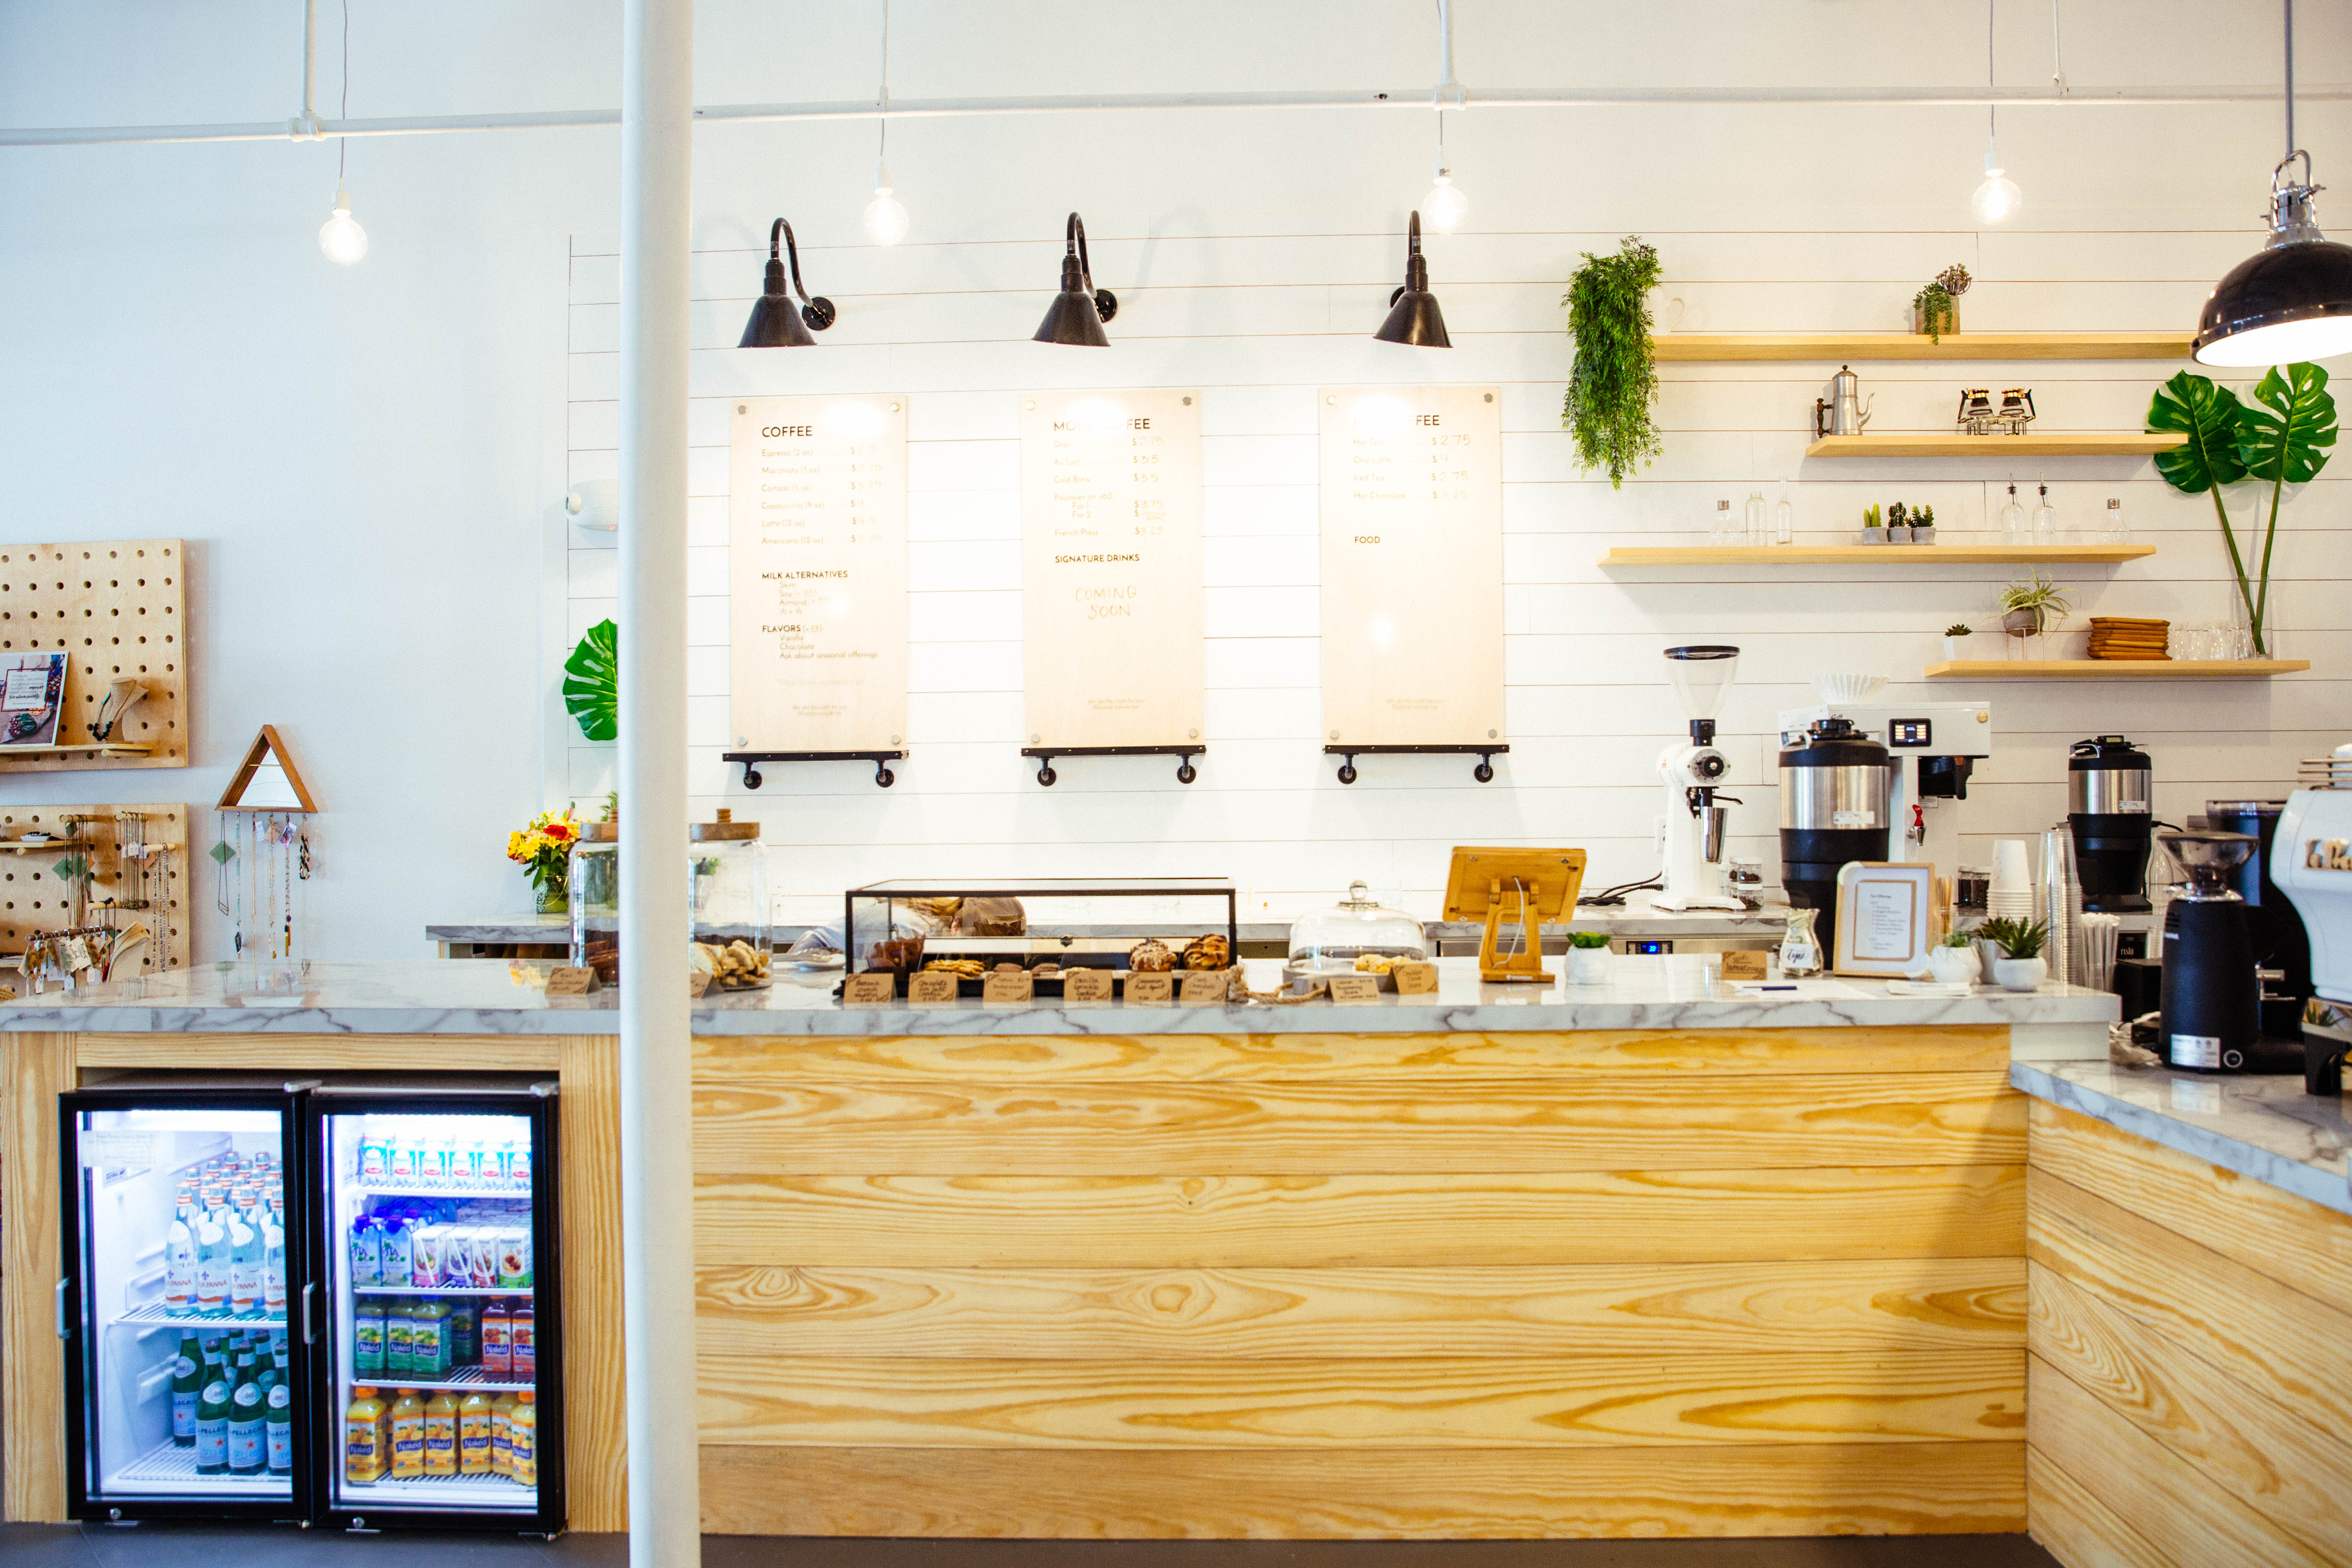 First Look: Specialty coffee for a cause at Light House Coffee ...